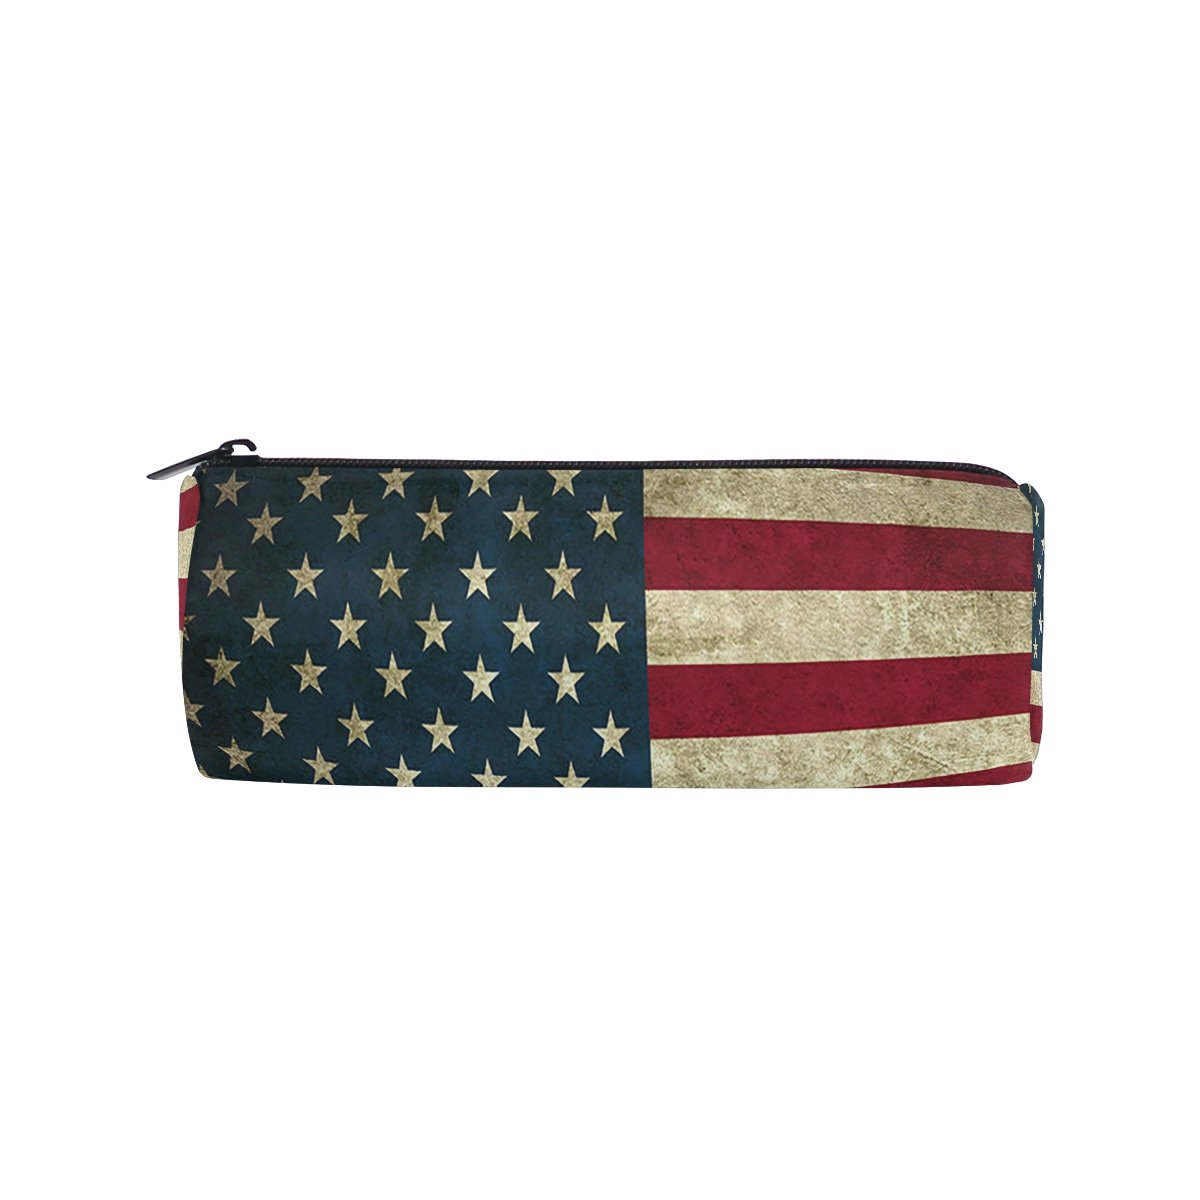 ALAZA American Flag Zipper Pencil Case Roll Pen Makeup Bag Holder Box Pouch for Students School Supplies